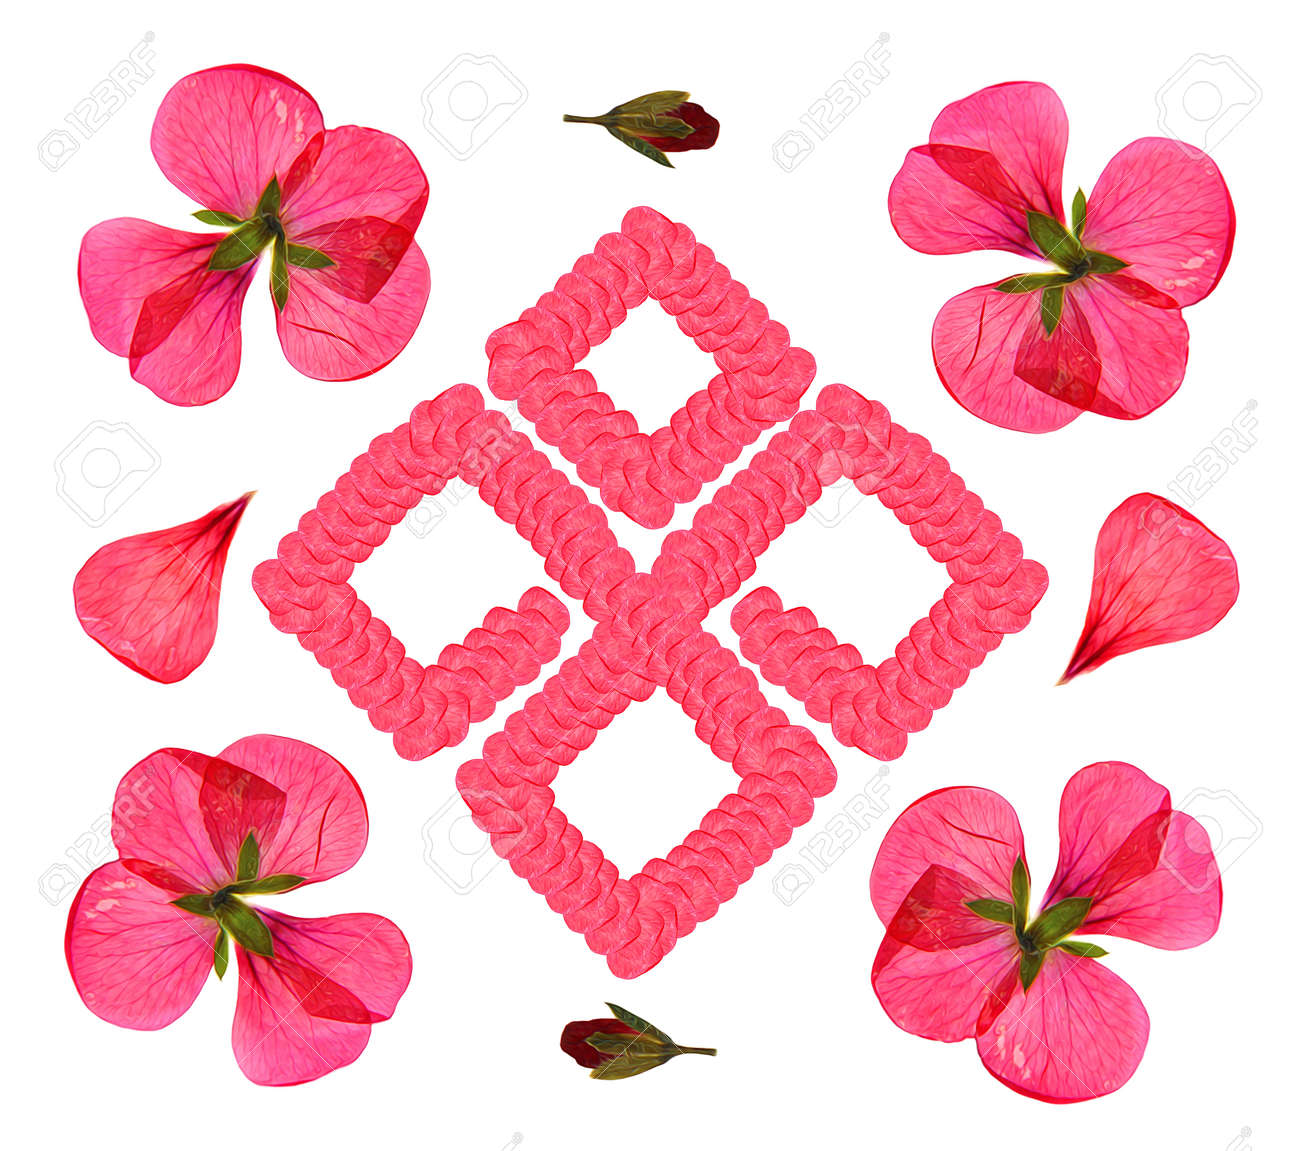 Oil draw protective slavic symbolism a sign of wish fulfillment protective slavic symbolism a sign of wish fulfillment health geranium biocorpaavc Choice Image